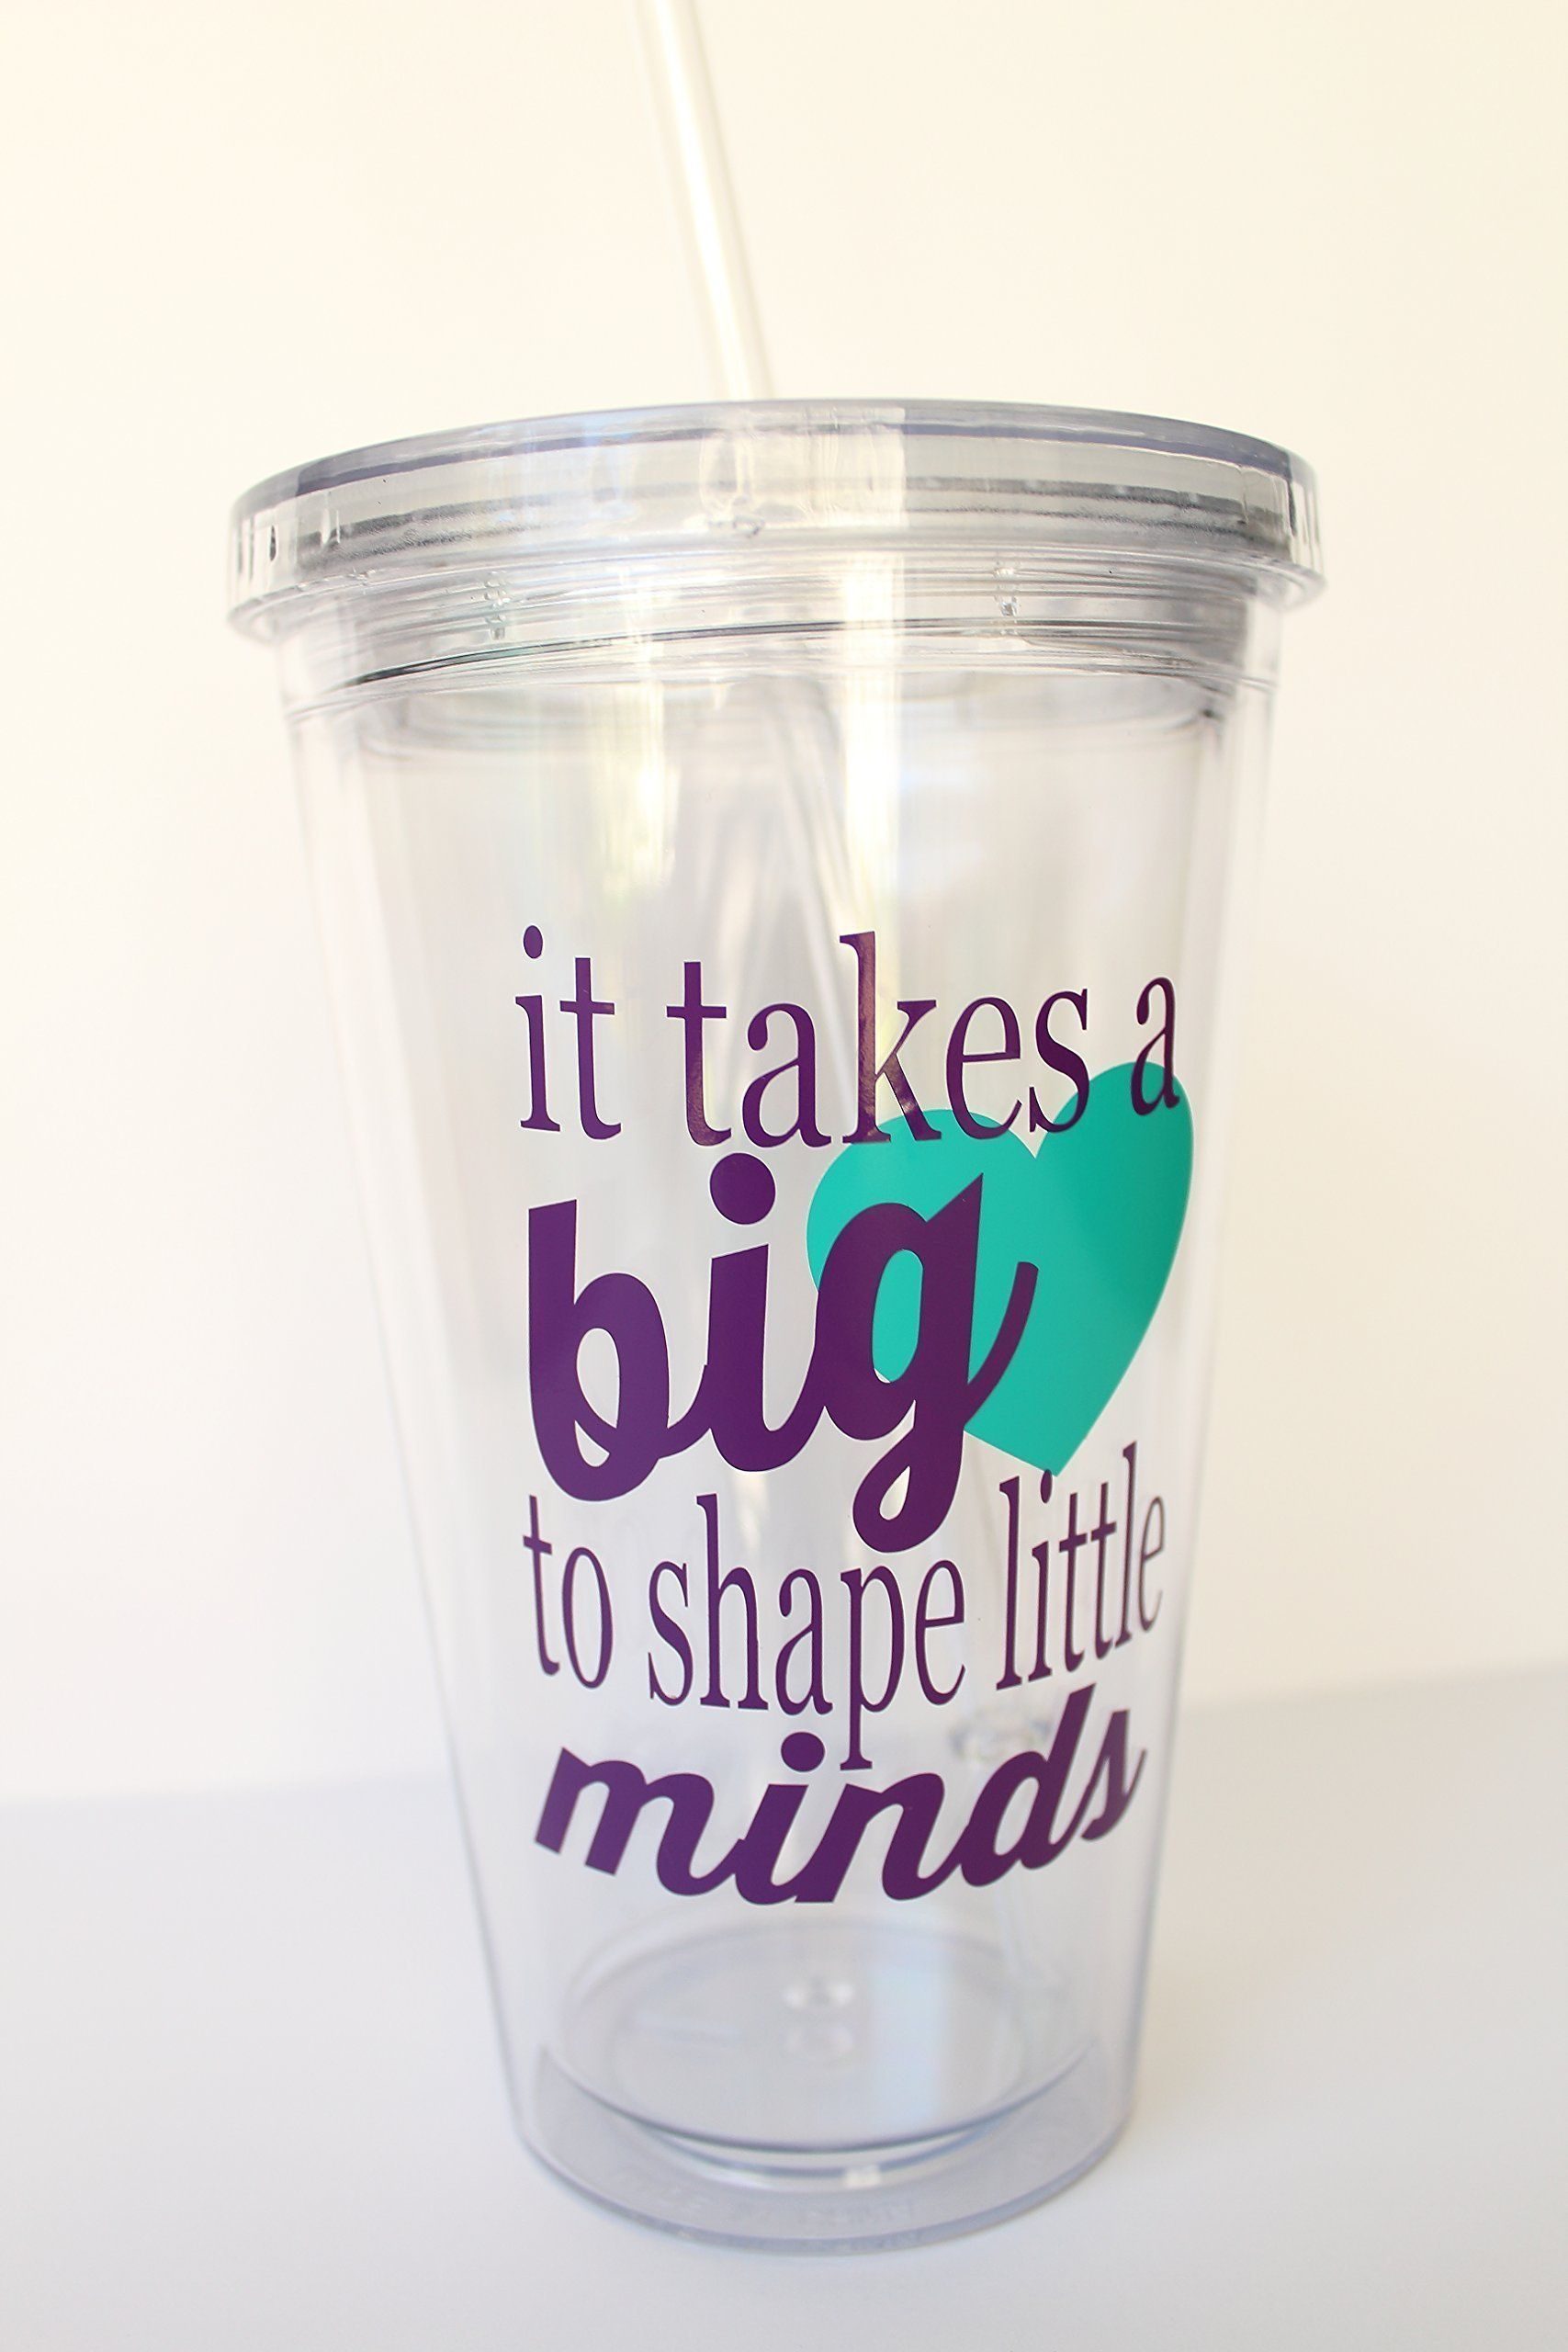 Teacher Appreciation Personalized 16 oz BPA free Tumbler with Lid and Straw. it takes a big heart to shape little minds This BPA free, acrylic tumbler makes a perfect gift for teachers, teacher assistants, daycare providers, coaches, and babysitters during the holidays, their birthdays, end of the year, or any day you want to show them your appreciation. #eceappreciationgiftideas